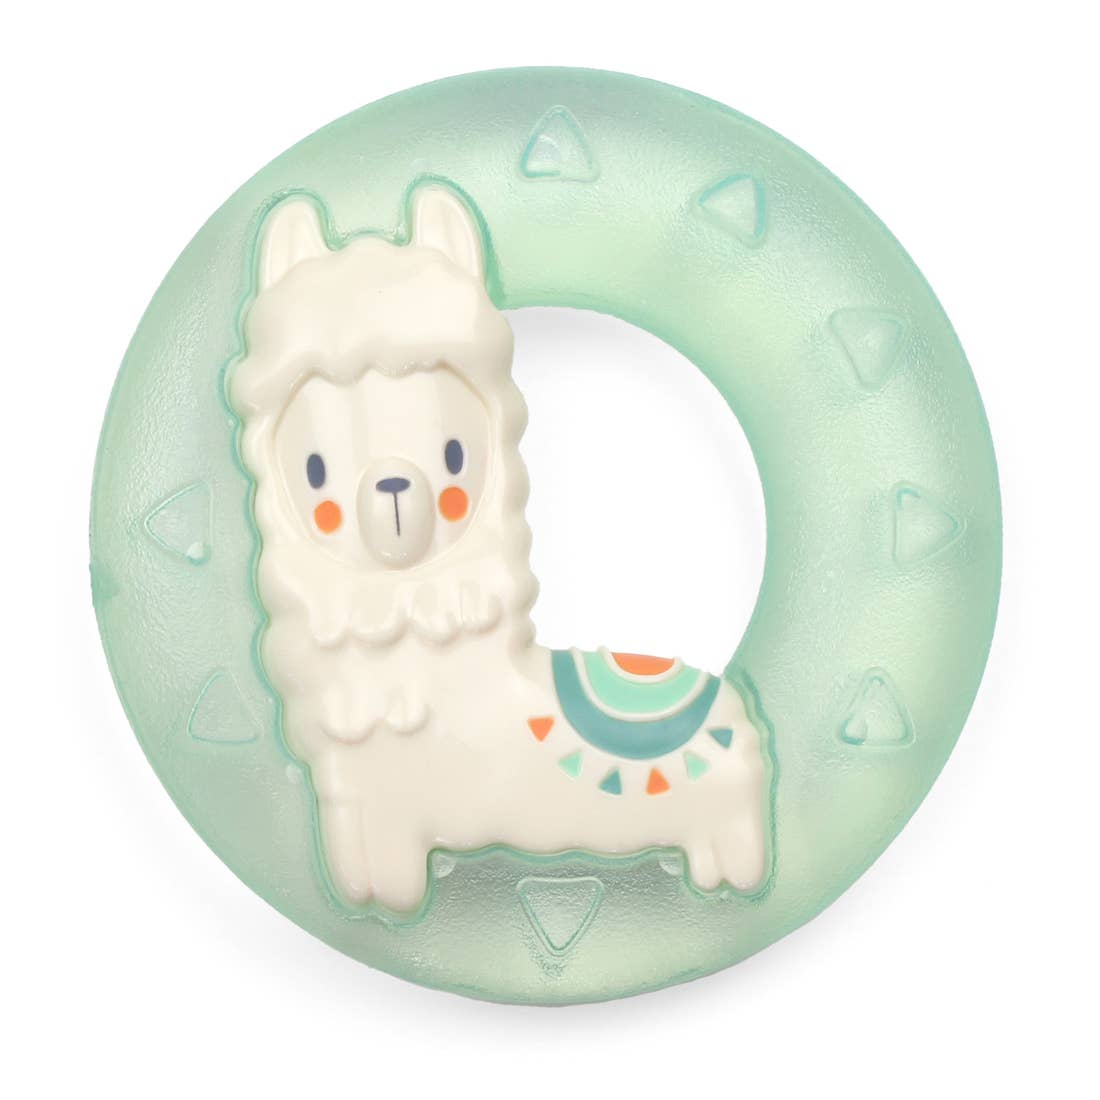 Cute 'n Cool ™ Llama Water Teether